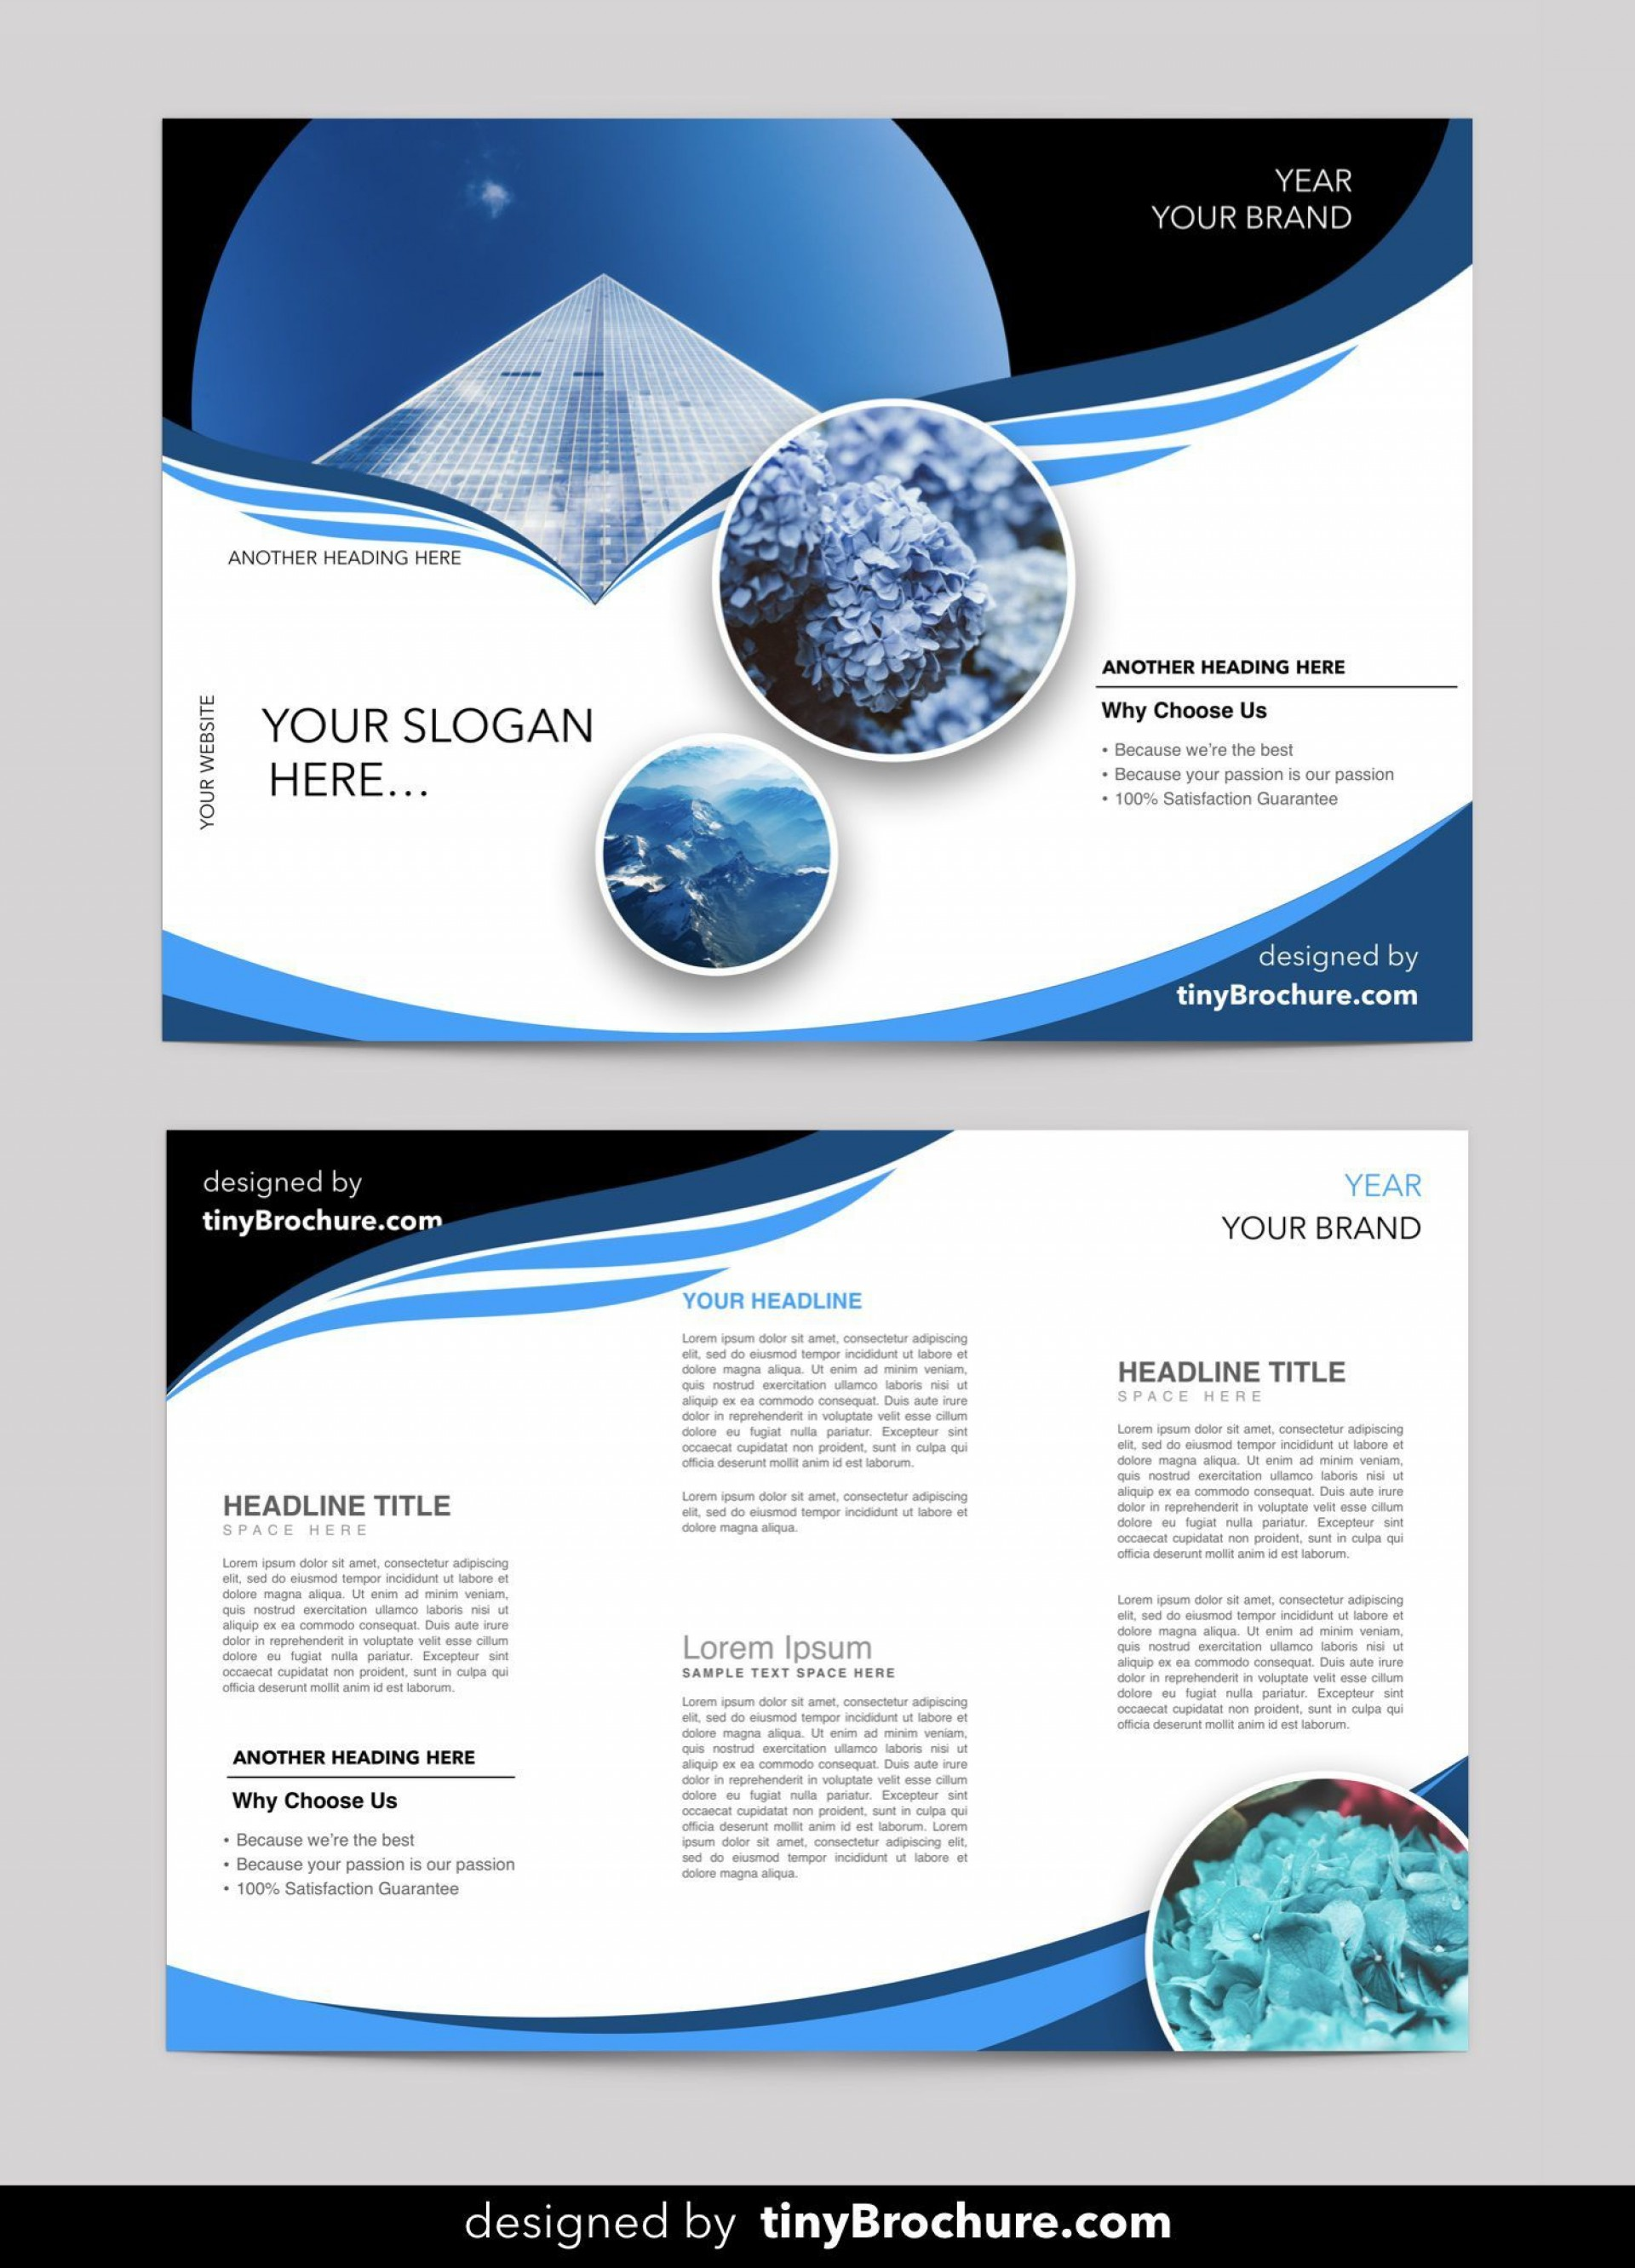 004 Unforgettable Brochure Template For Word 2010 Image  Download Microsoft Free Blank Tri Fold1920